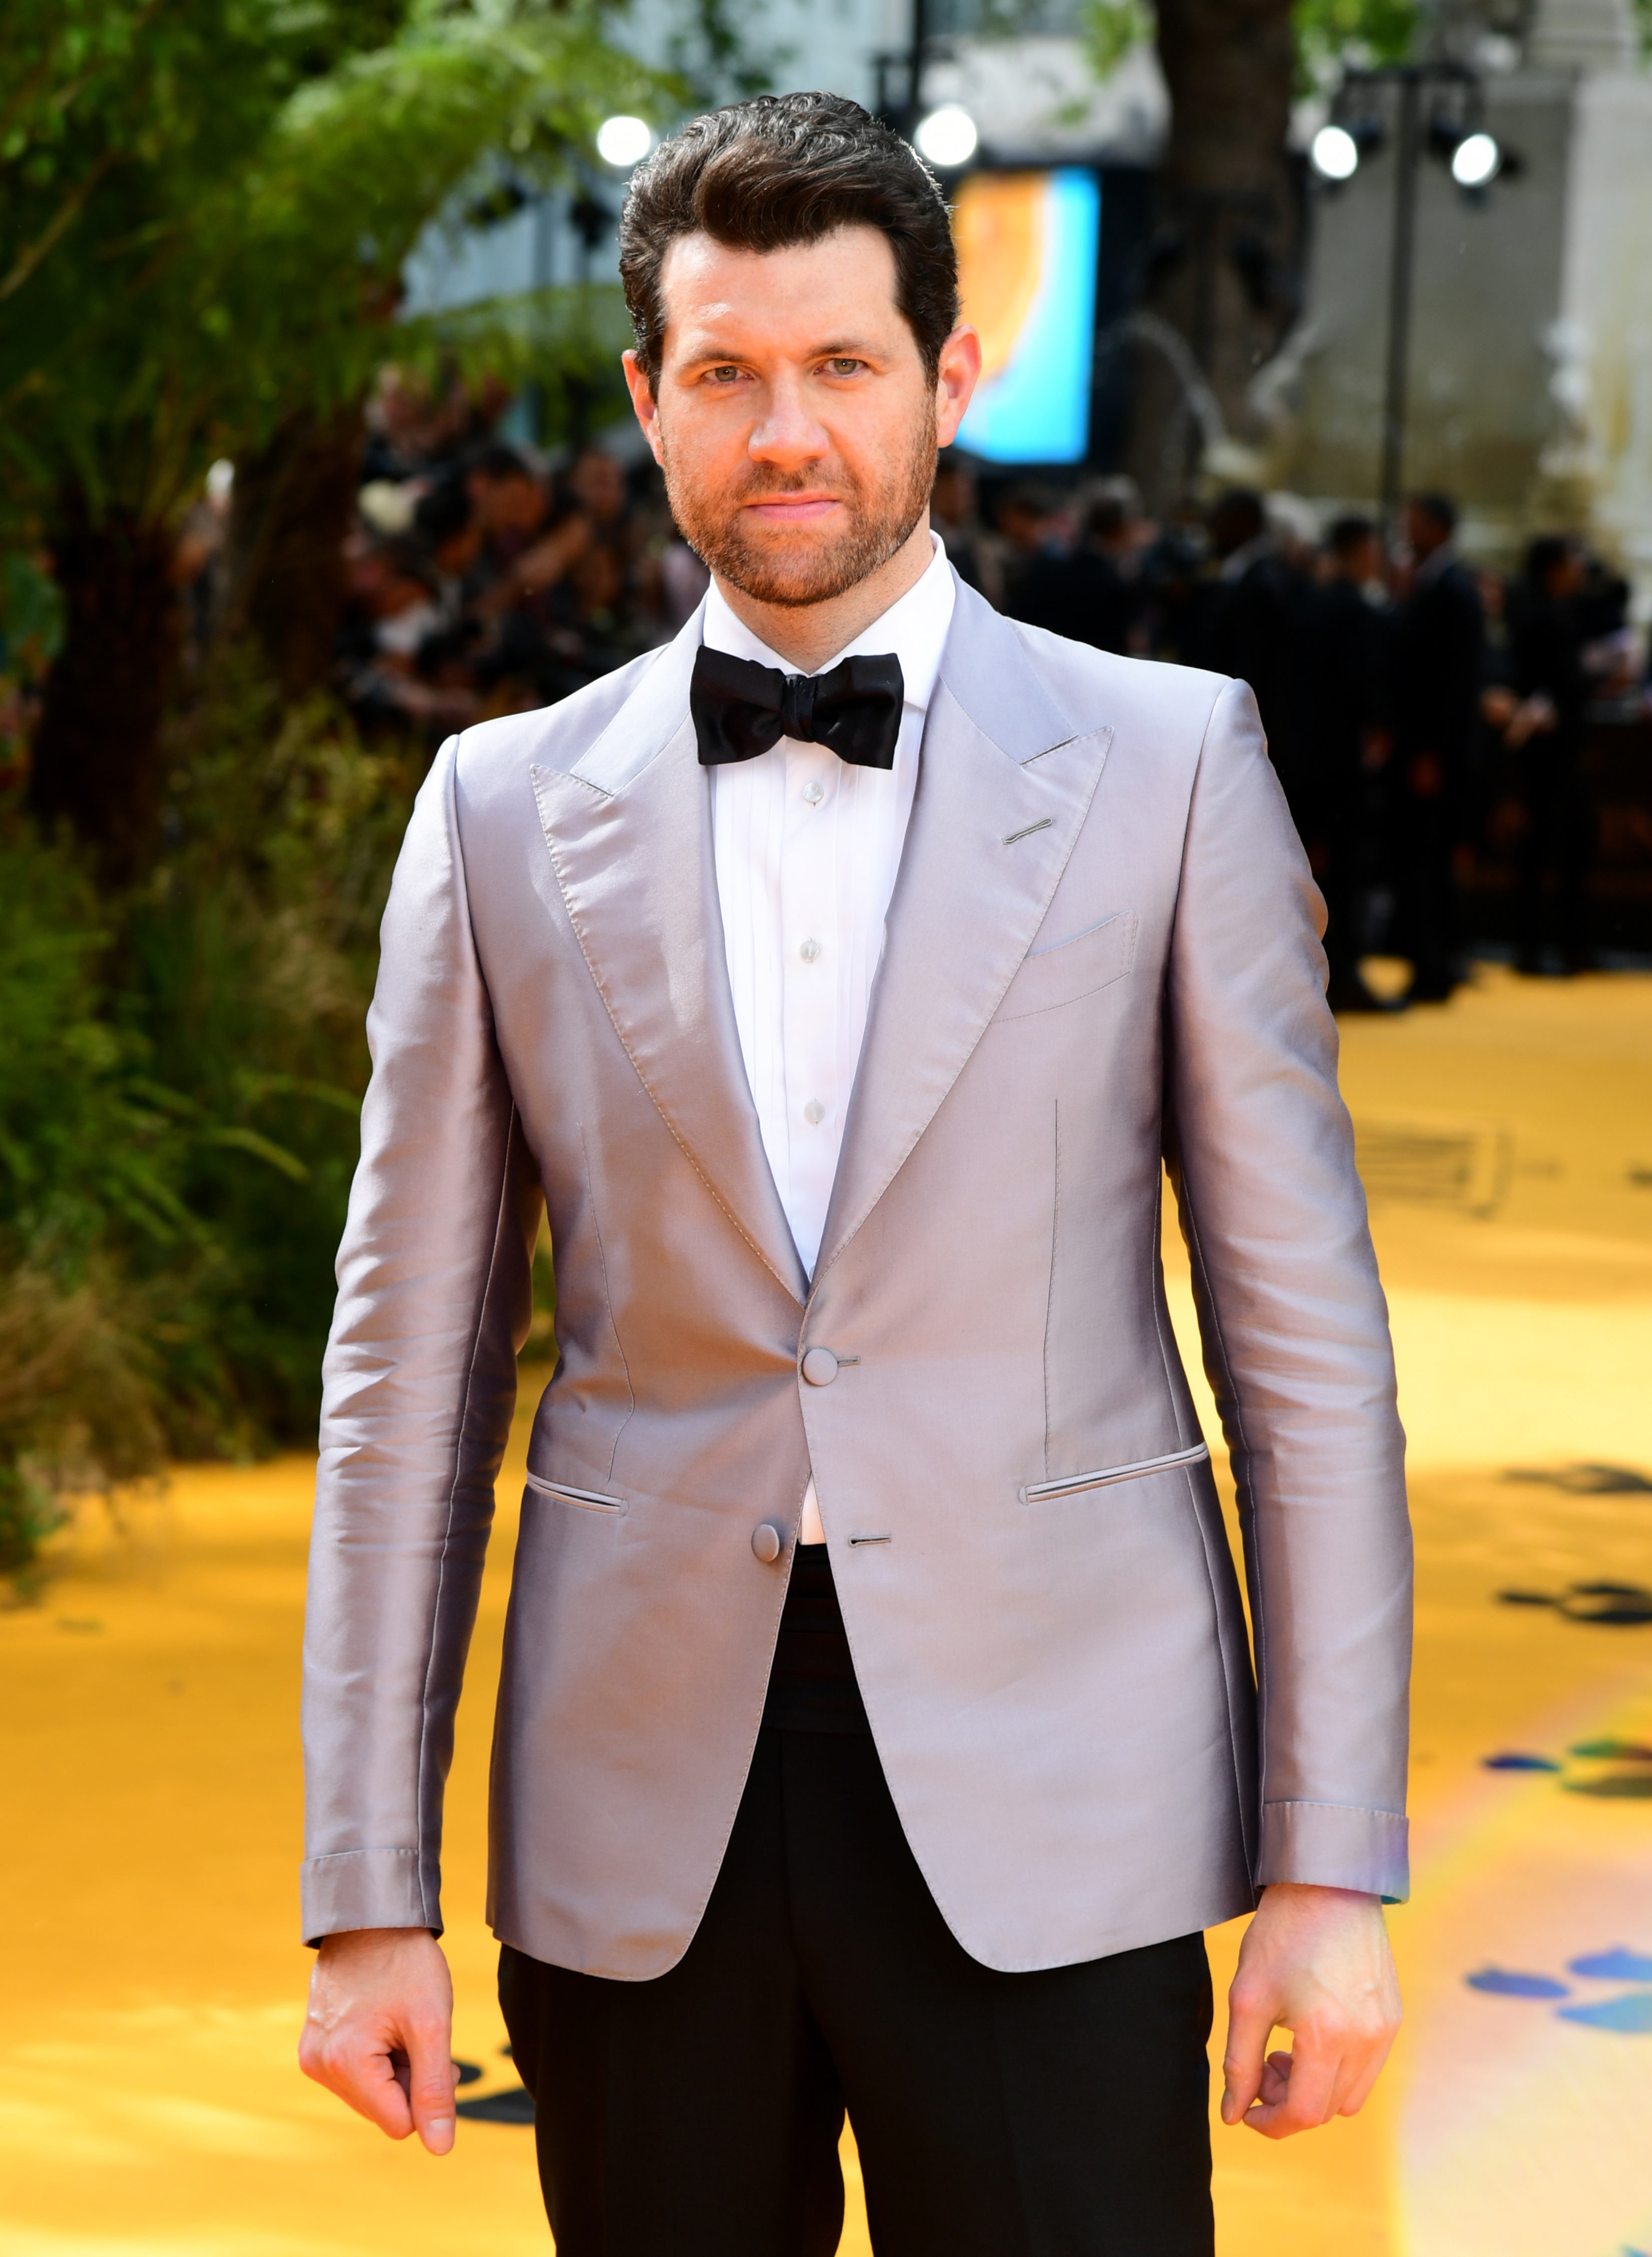 Billy Eichner attending Disney's The Lion King European Premiere held in Leicester Square, London.